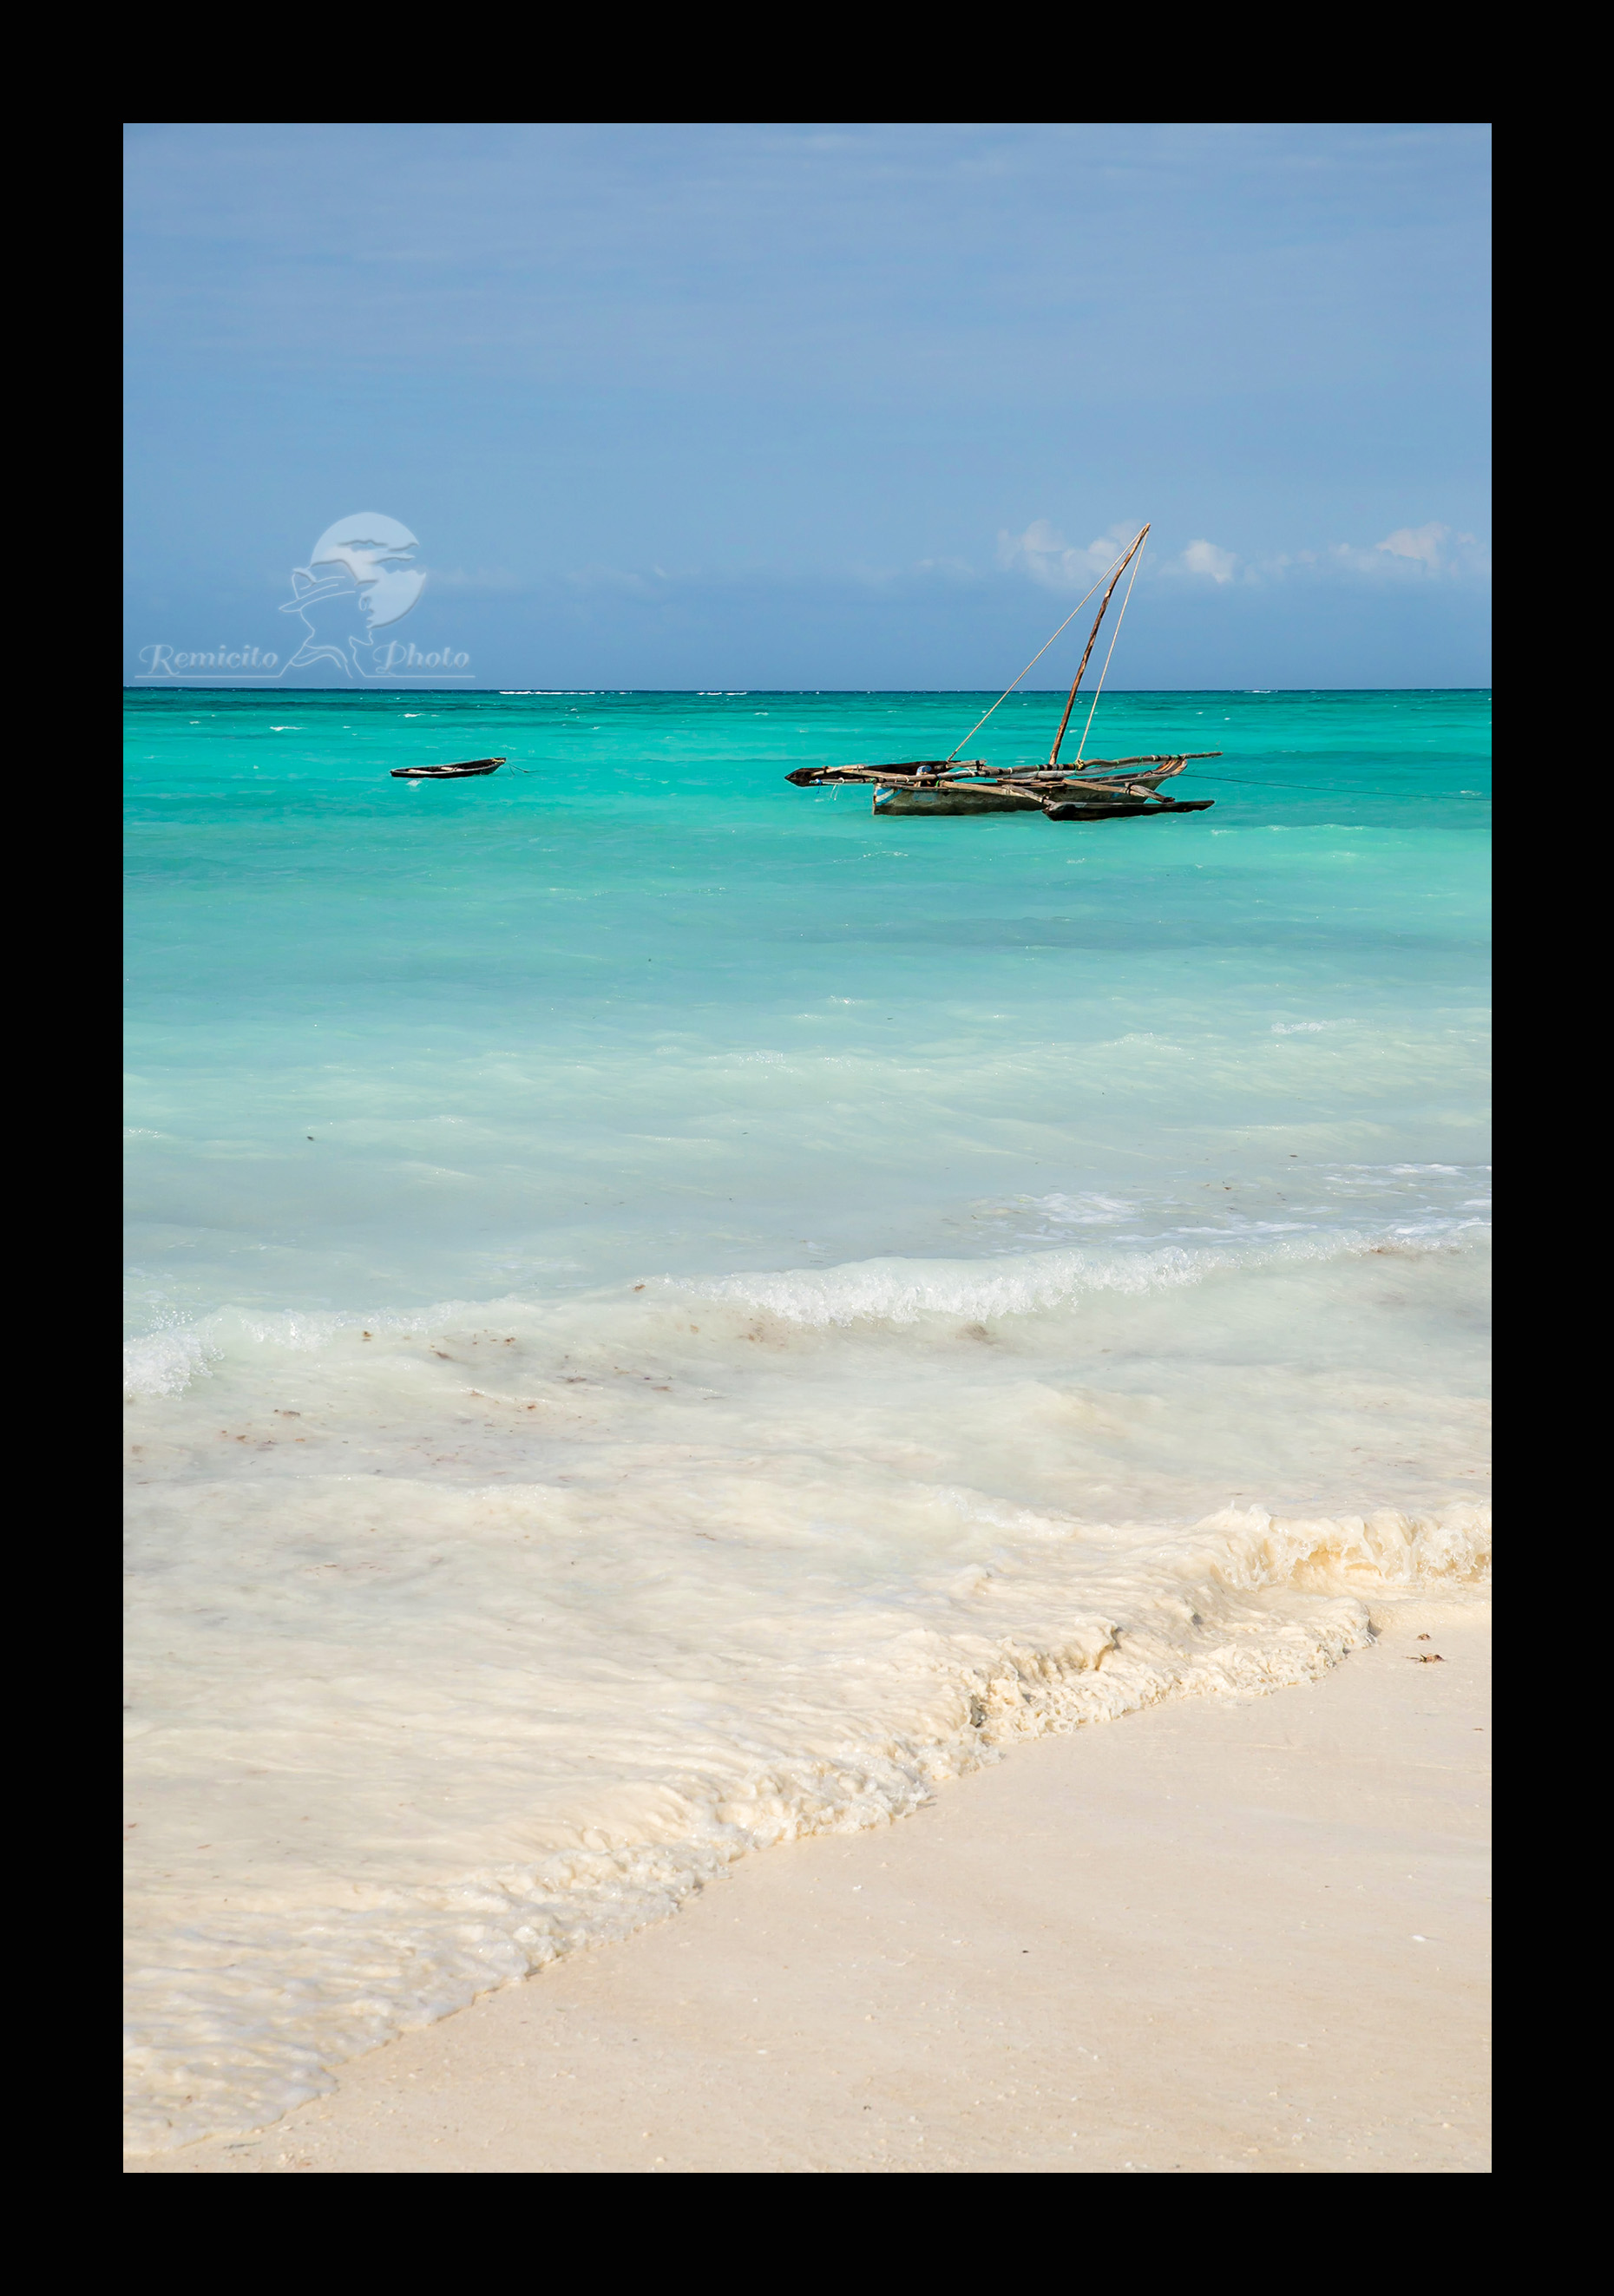 remicito photo, image du jour, photo du jour, photo of the day, photo plage zanzibar, eau turquoise Zanzibar, bateau pêche Zanzibar, belle photo plage, photo eau turquoise, eau limpide, plage de sable blanc, île zanzibar, photo tanzanie plage